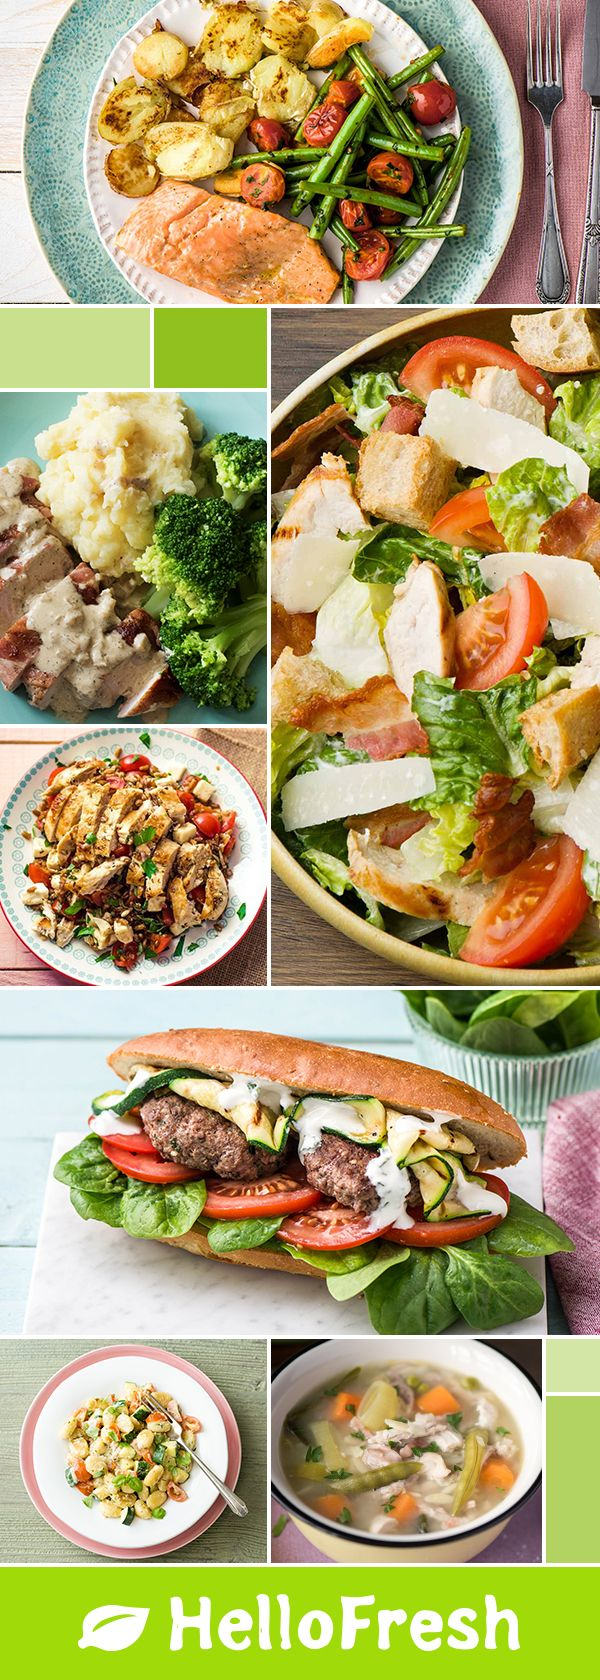 Found an exciting recipe on Google but can't be bothered to look for the ingredients? HelloFresh has got the planning and shopping covered, so you just have fun in the kitchen :) ➜ Use code HELLOPI25 at checkout to save £25 on your 1st box. End date 30/8